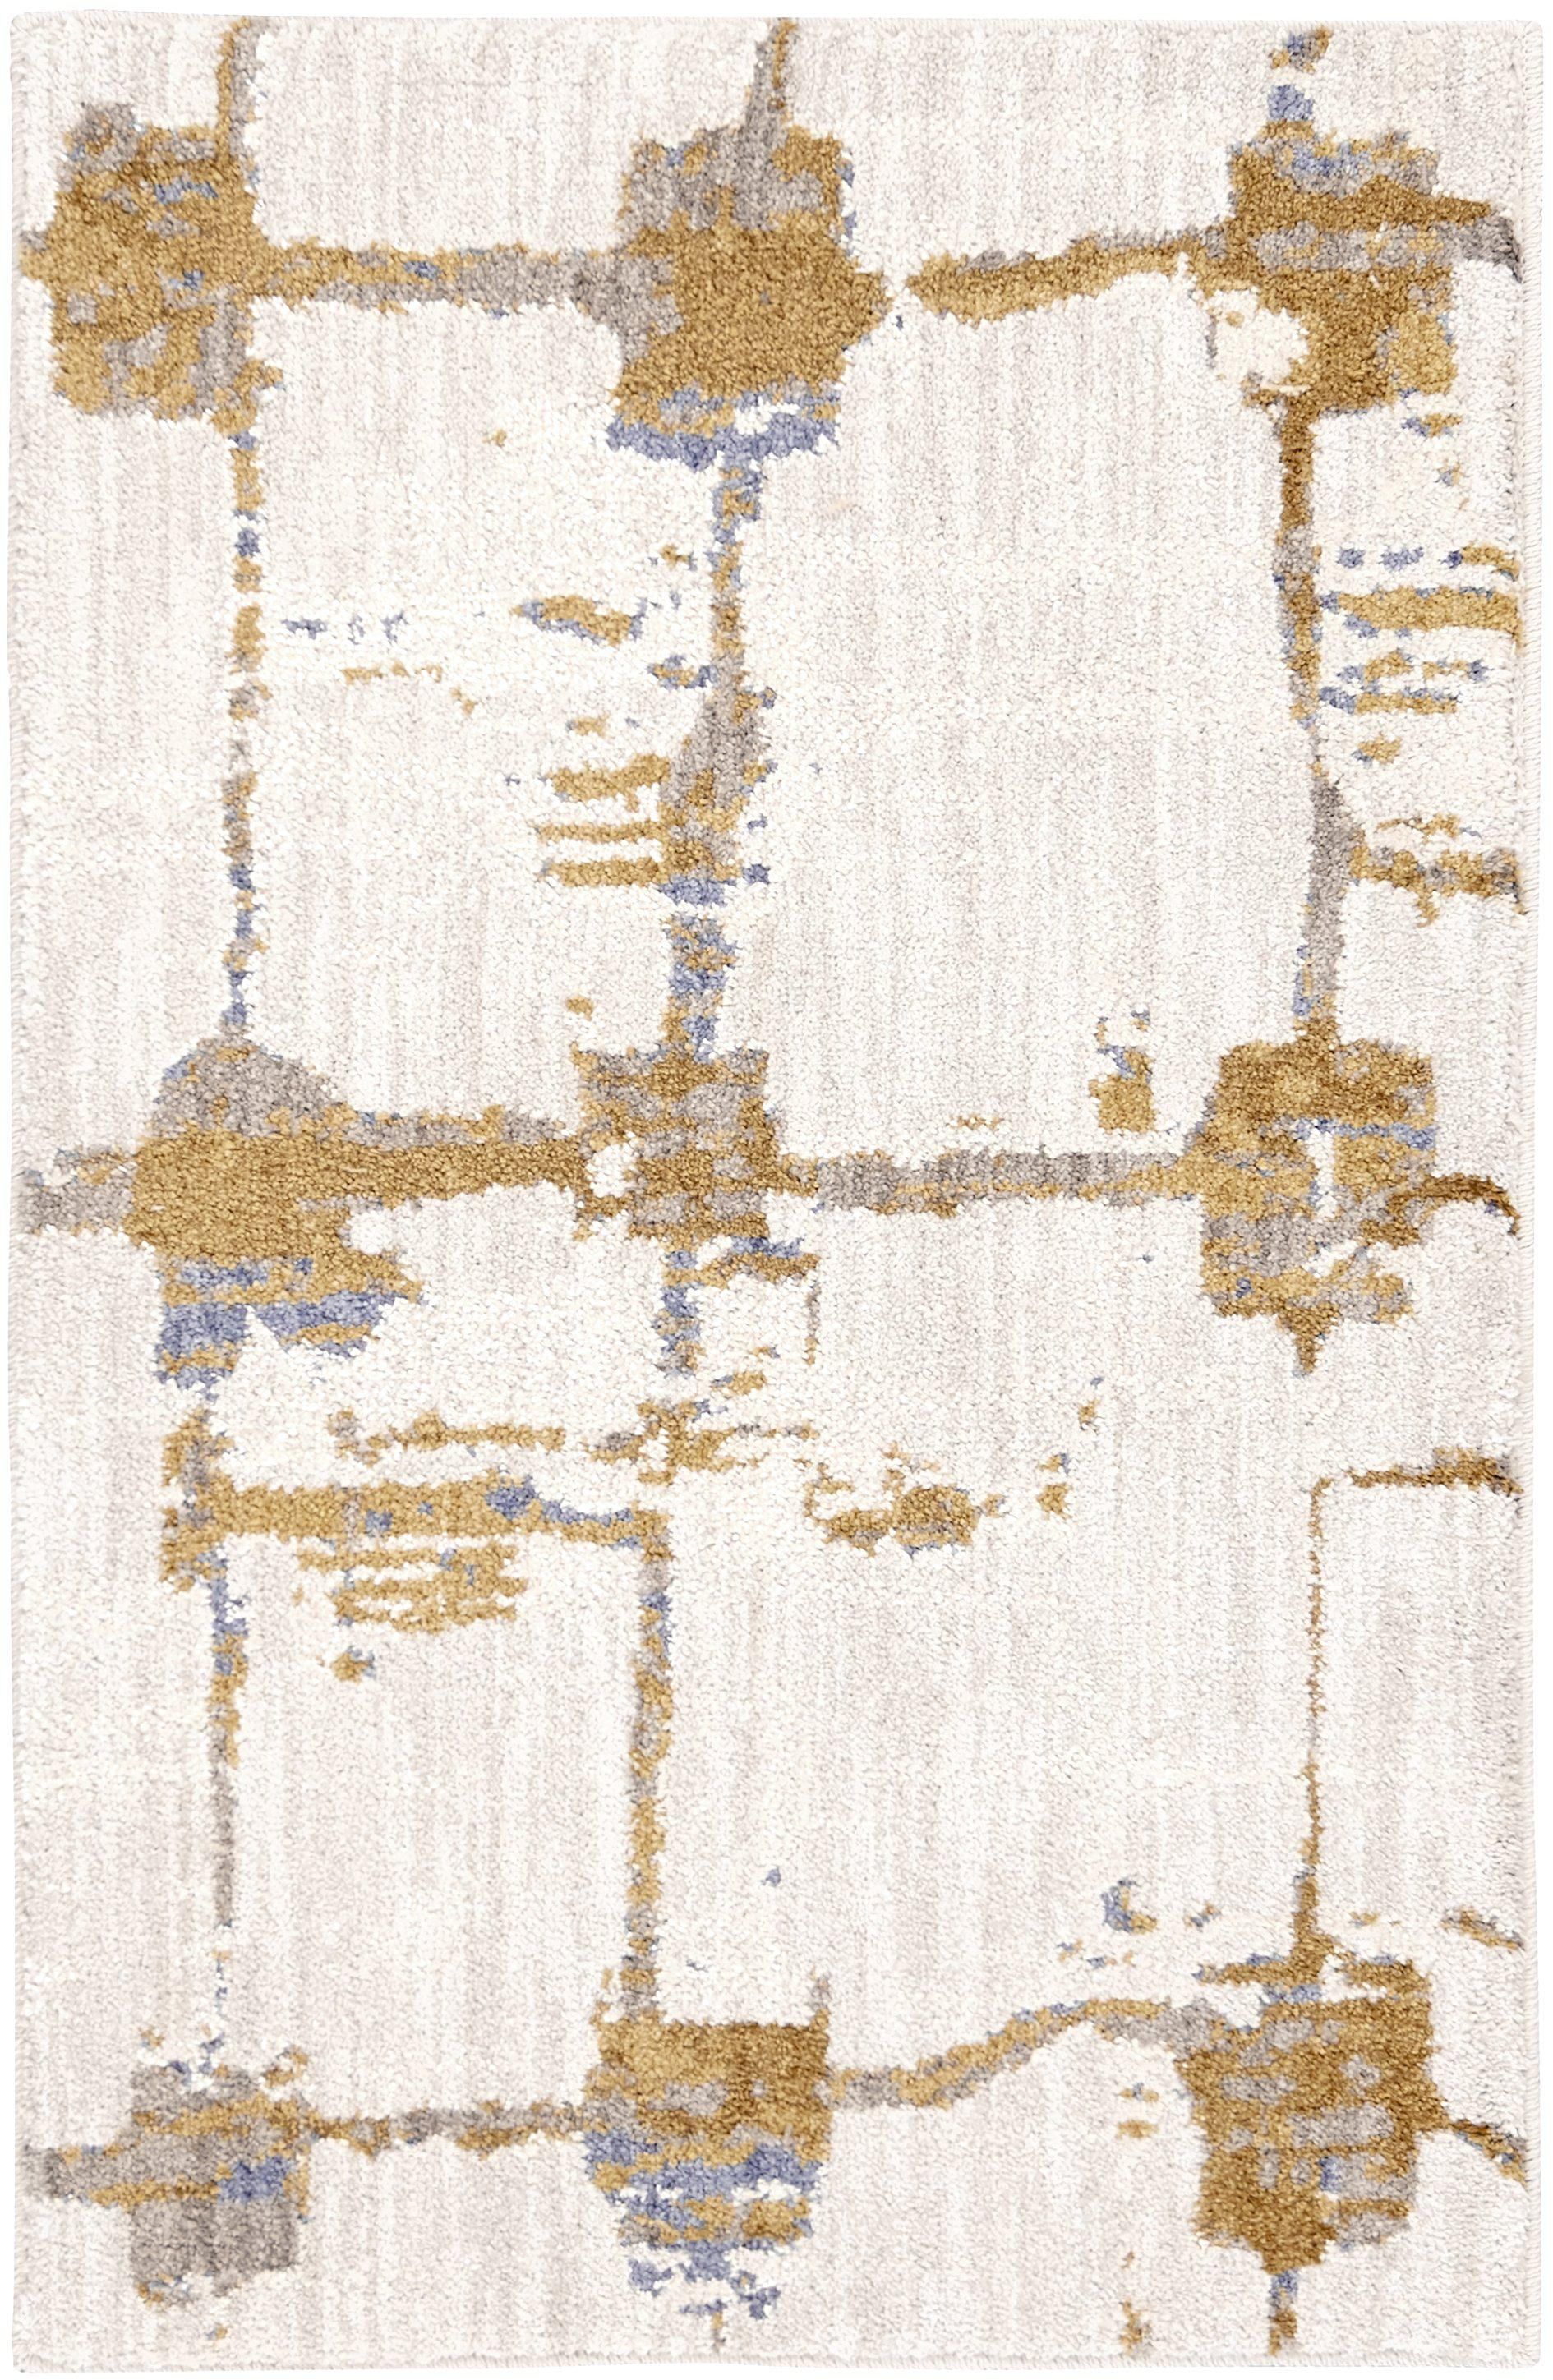 Artisan Mirage Brushed Gold by Scott Living Area Rug-Area Rug-Scott Living-2'x3'-The Rug Truck